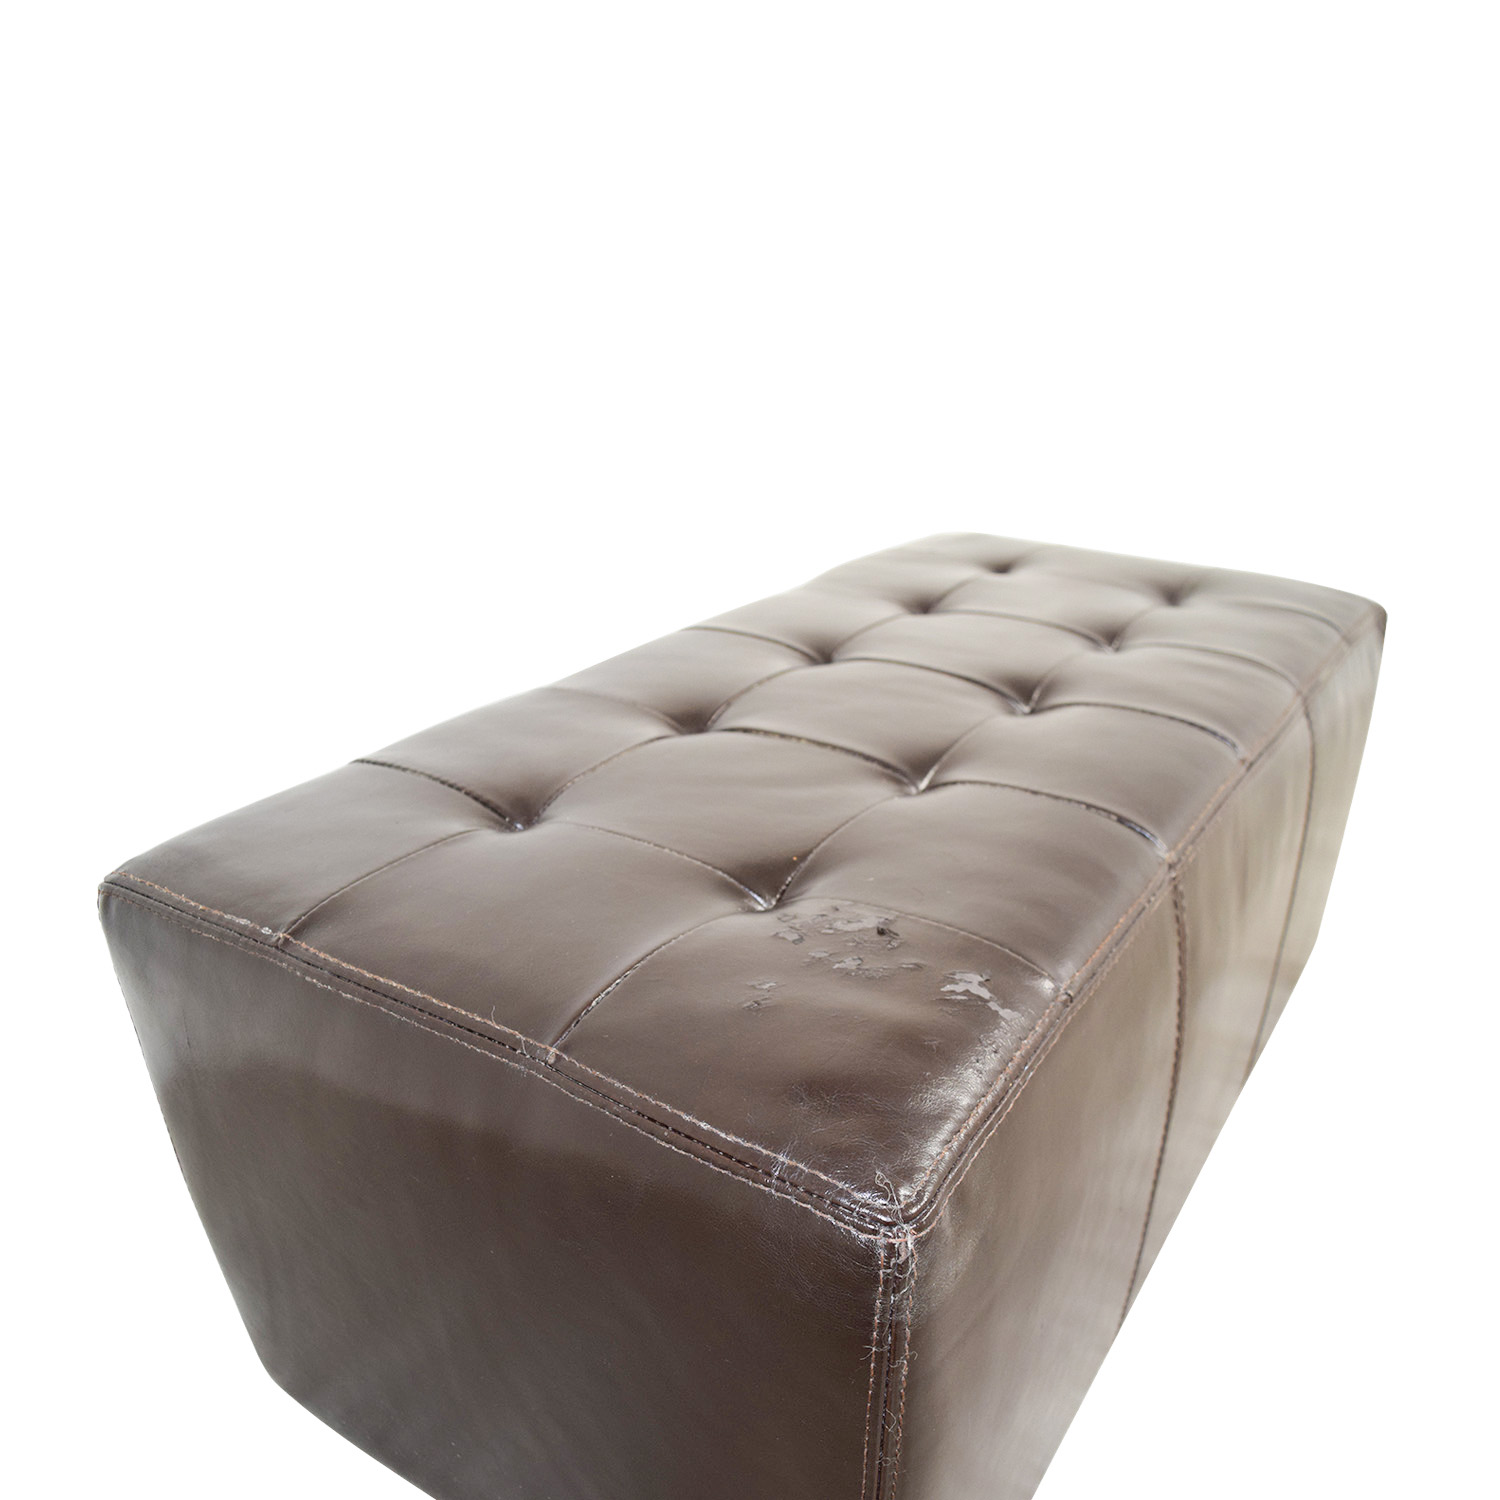 Off Ikea Brown Leather Tufted Ottoman Chairs